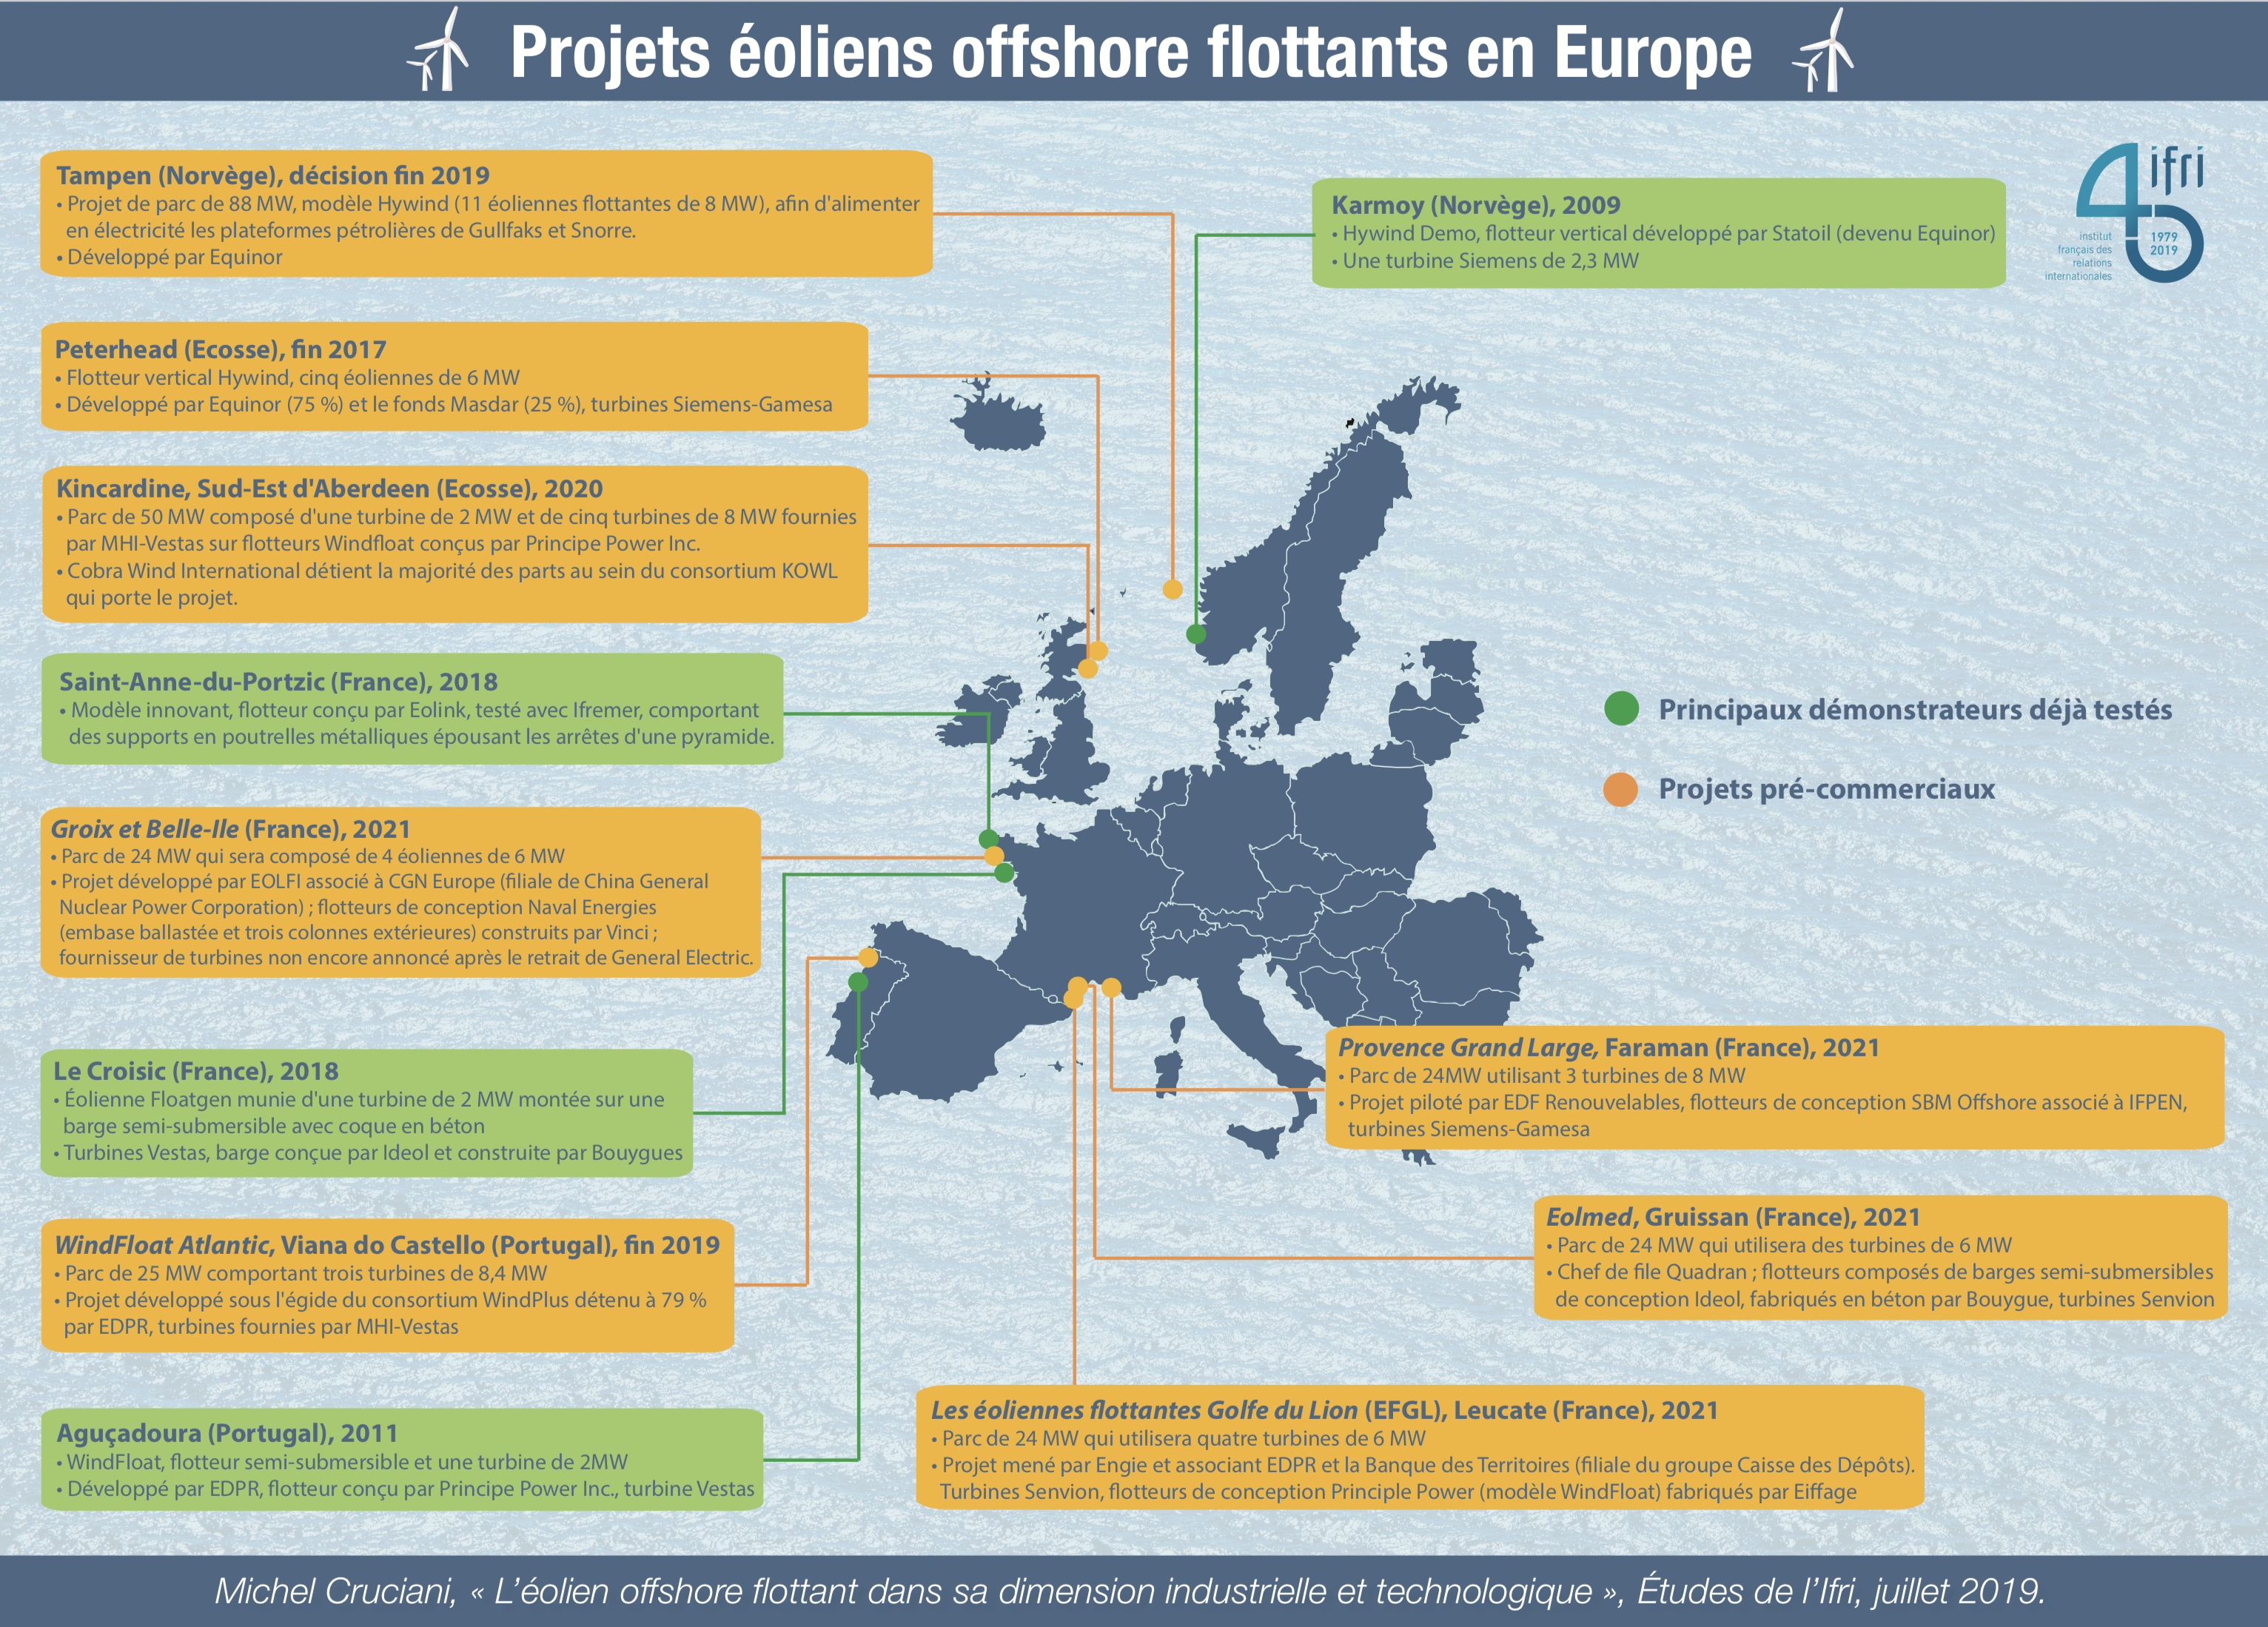 Projets éoliens offshore flottants en Europe - Carte -